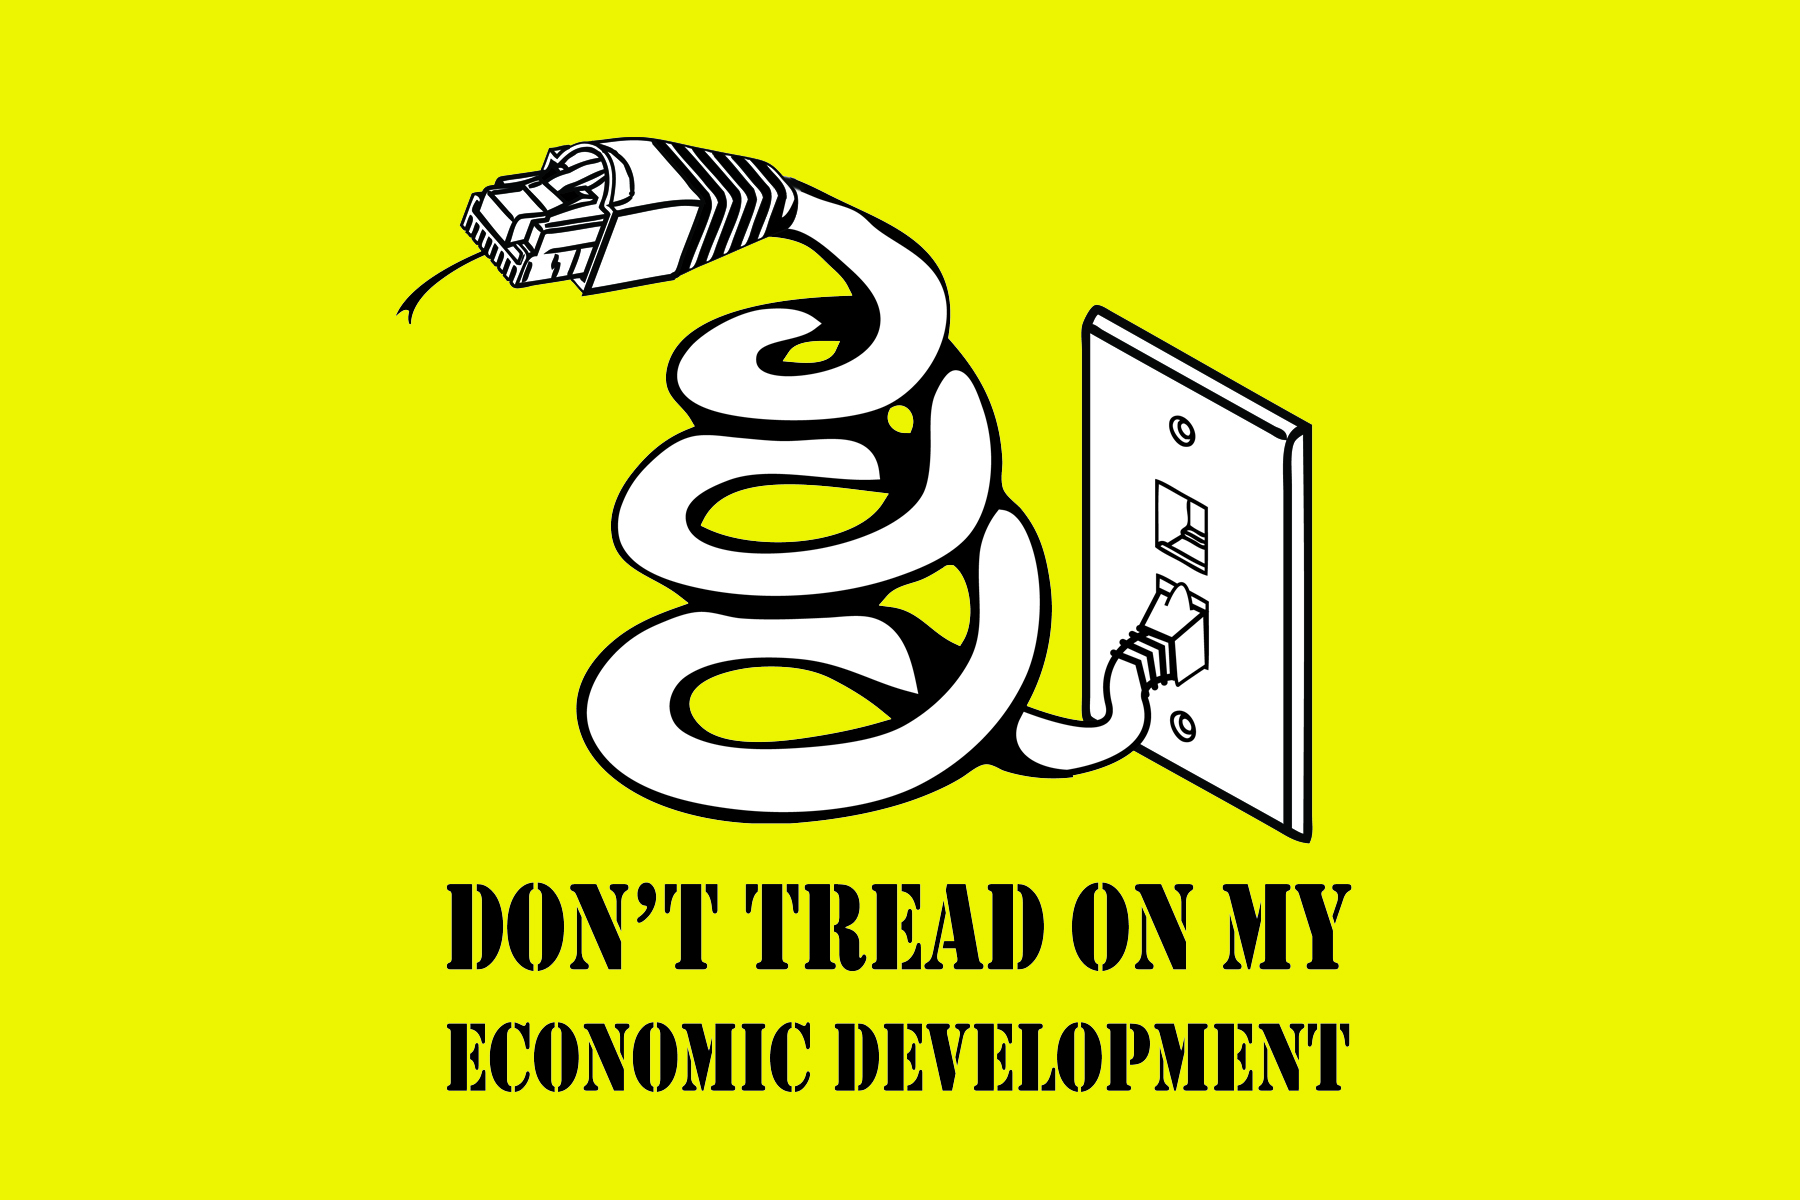 donttread-econdev-yellow1